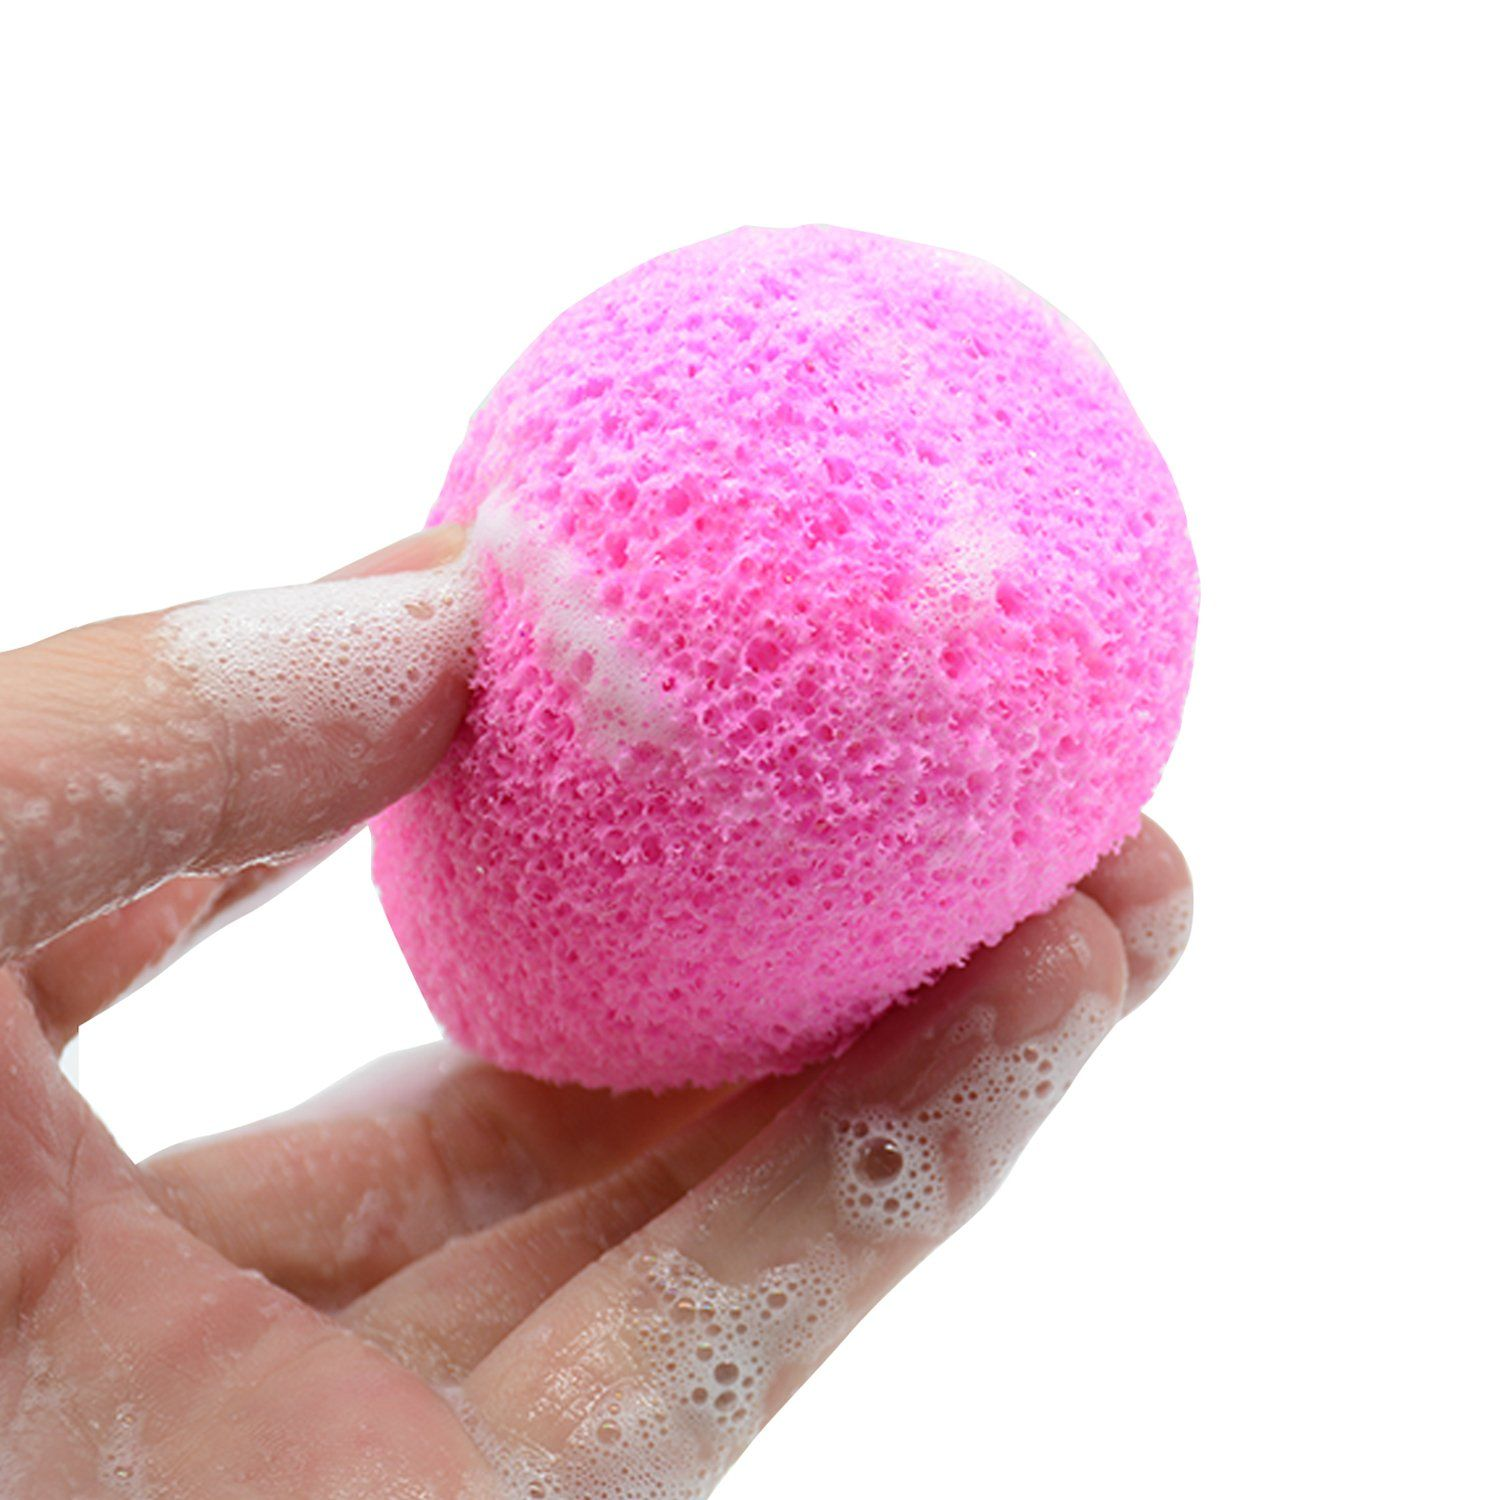 COLOR CLEANER Miracle Cleansing Sponges Facial For Makeup